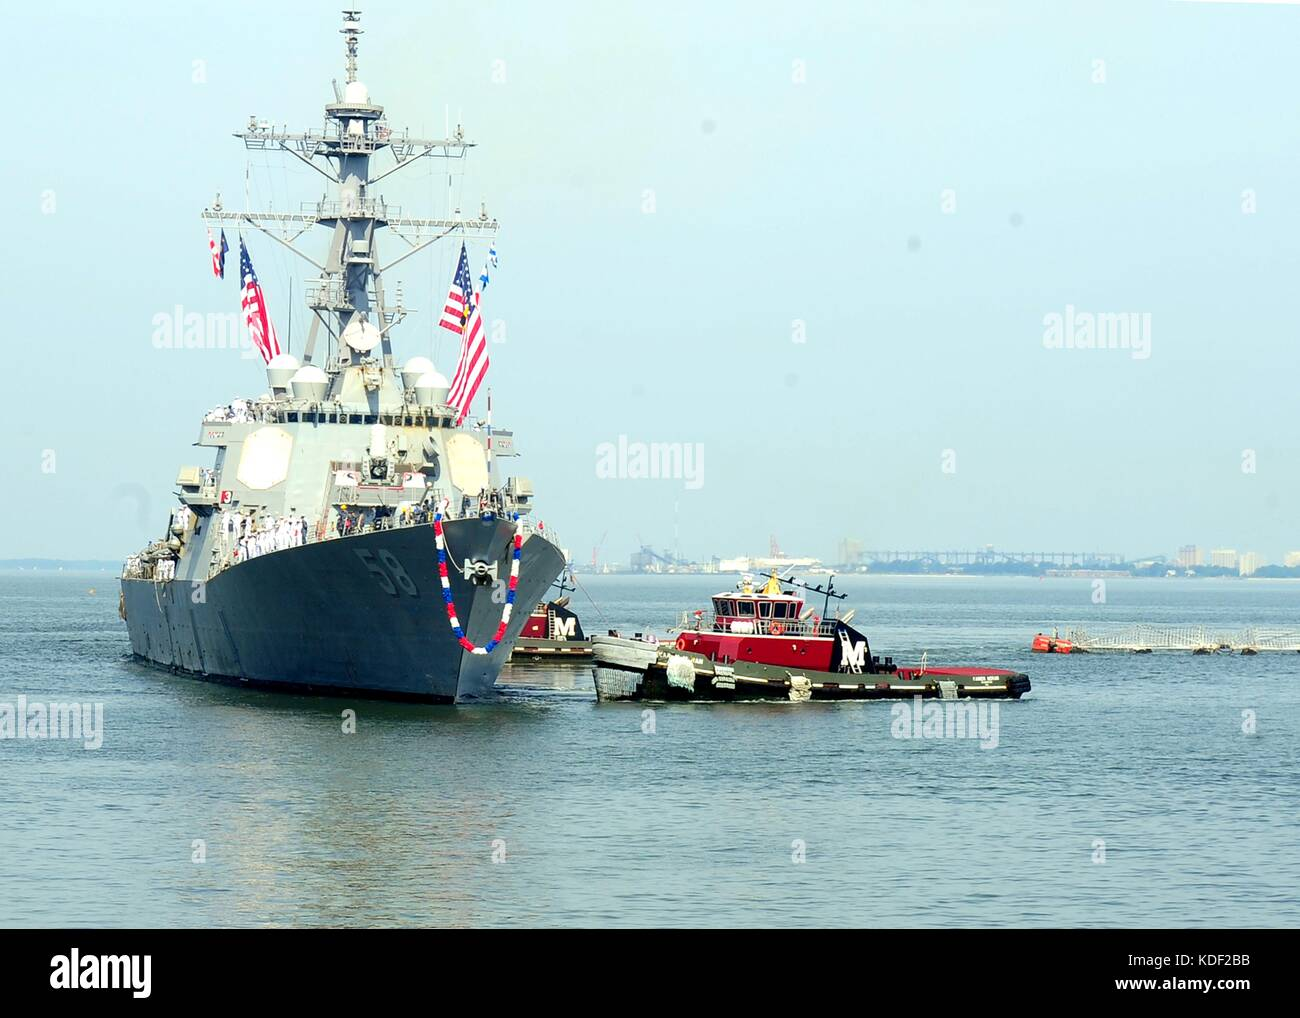 Tugboats help tow the U.S. Navy Arleigh Burke-class guided-missile destroyer USS Laboon as it returns to its homeport - Stock Image